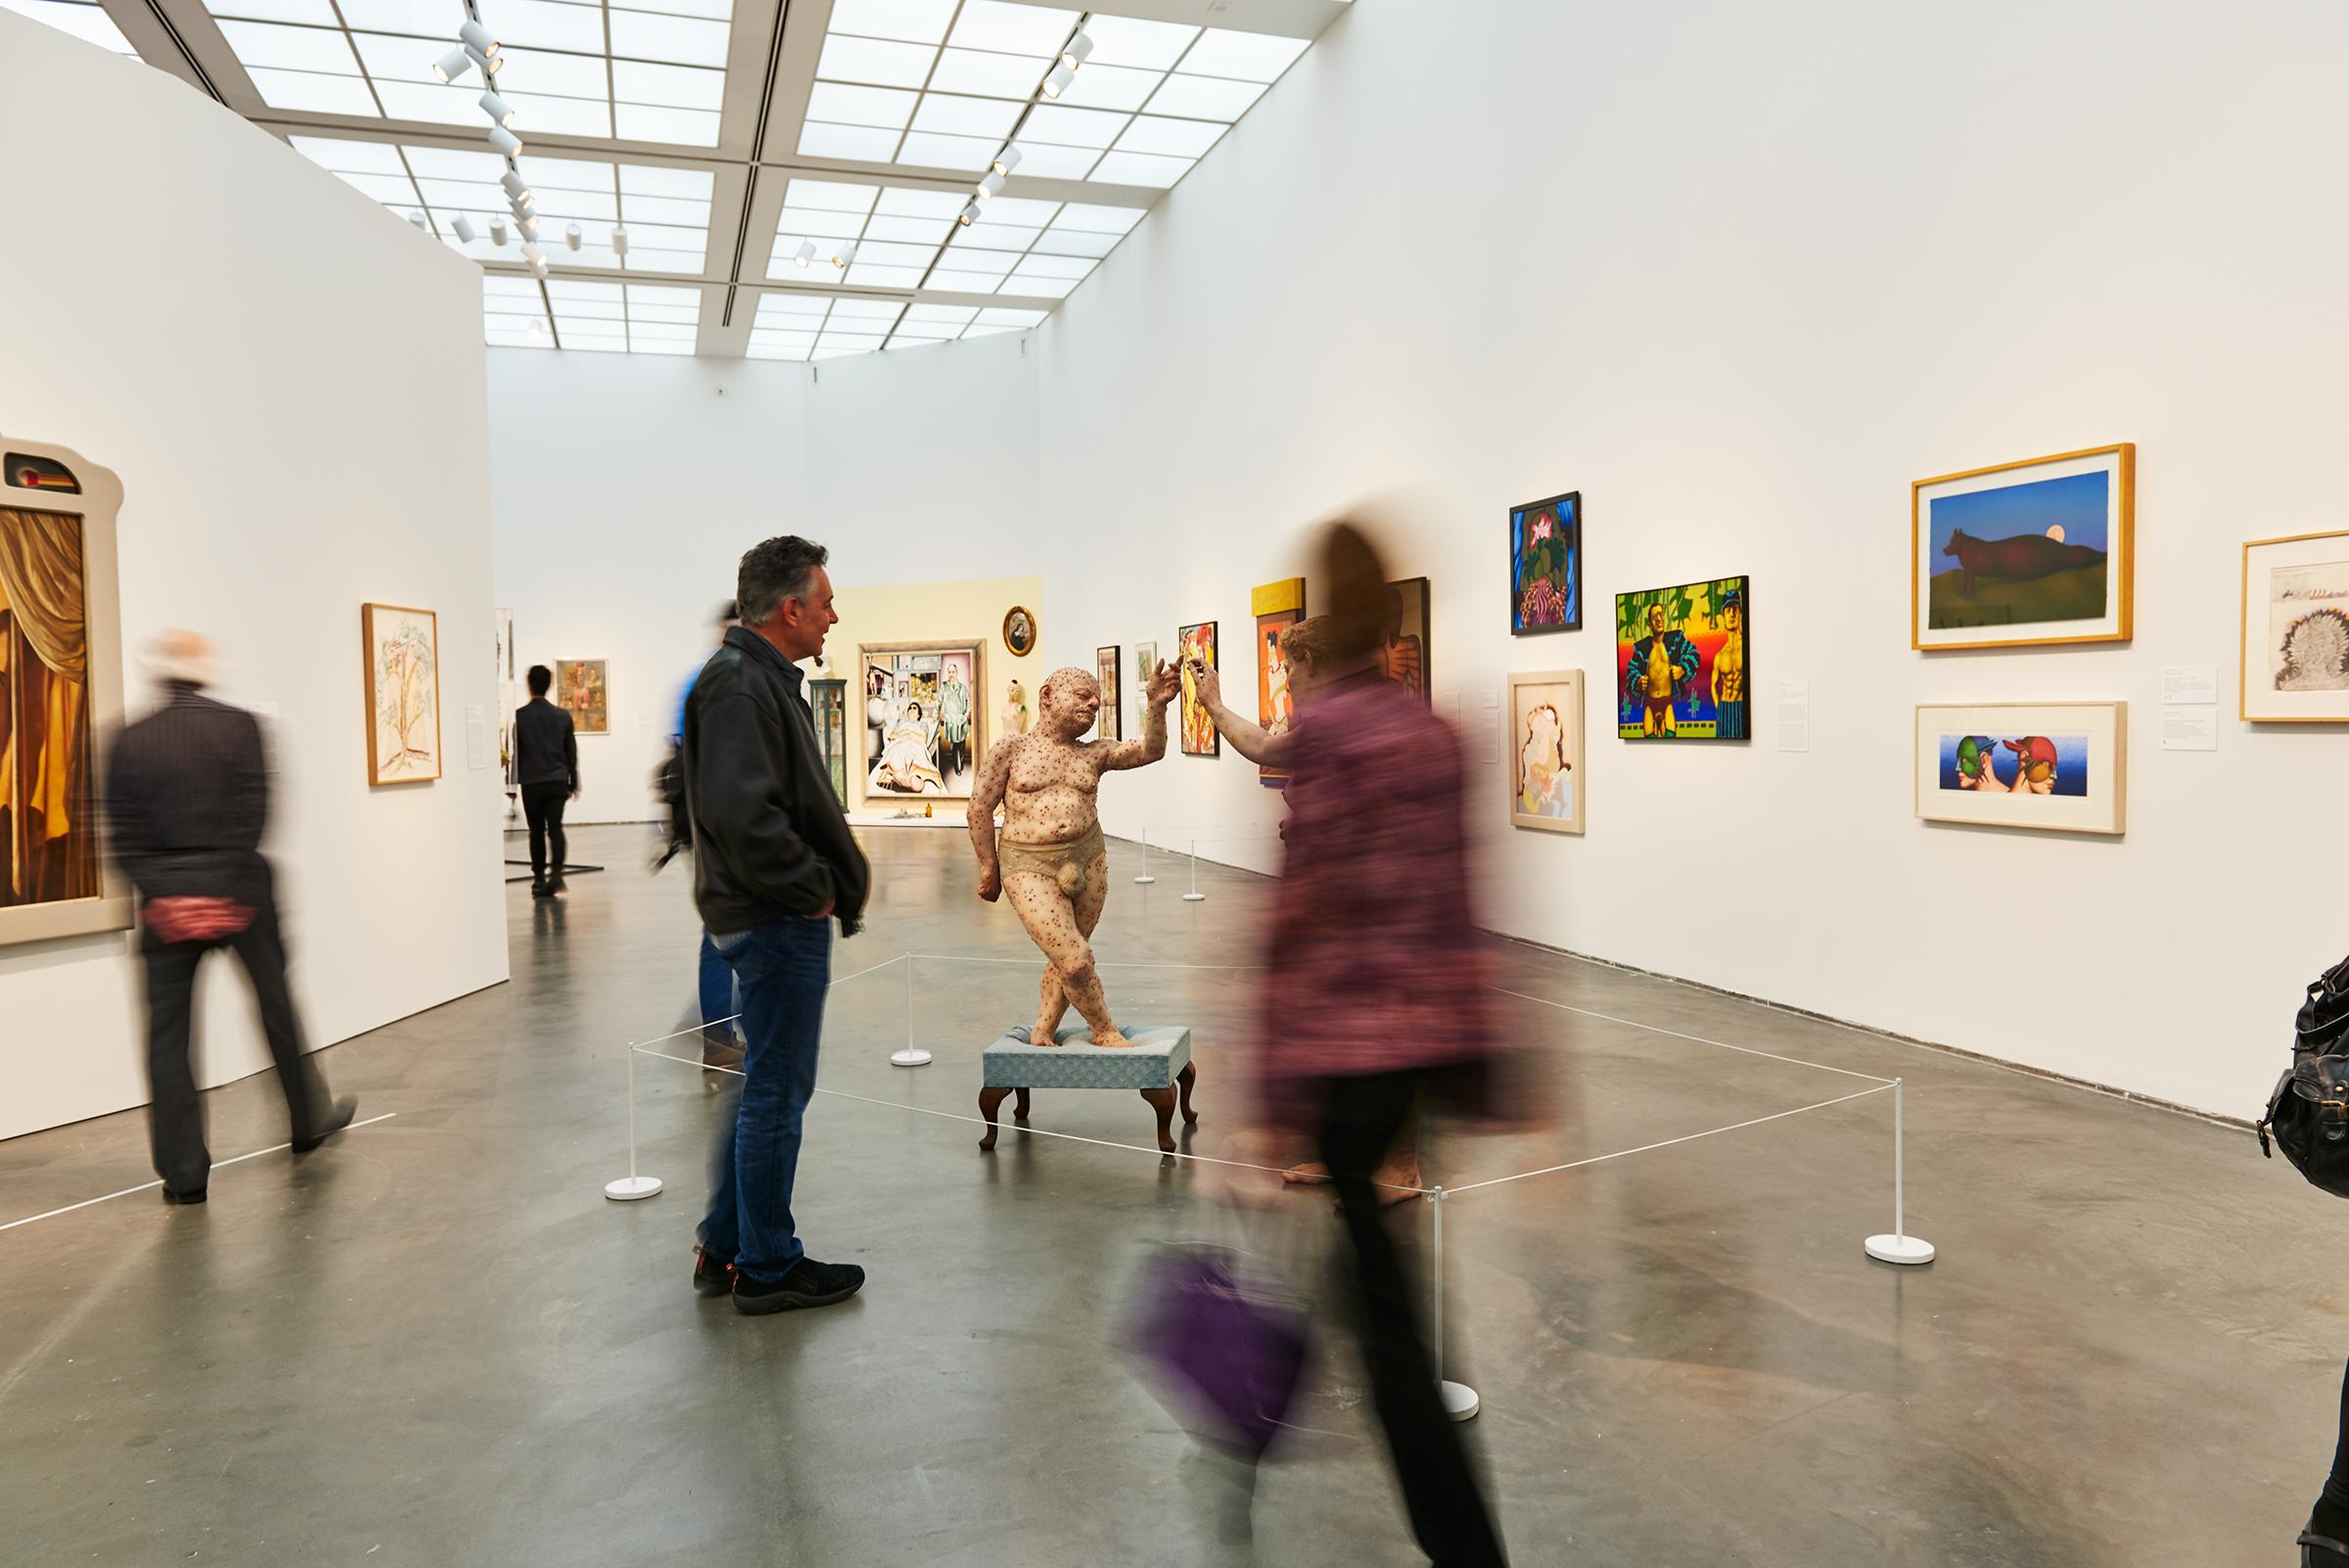 Several visitors look at paintings and sculpture in a gallery whose curvilinear walls draw viewers closer to its center.